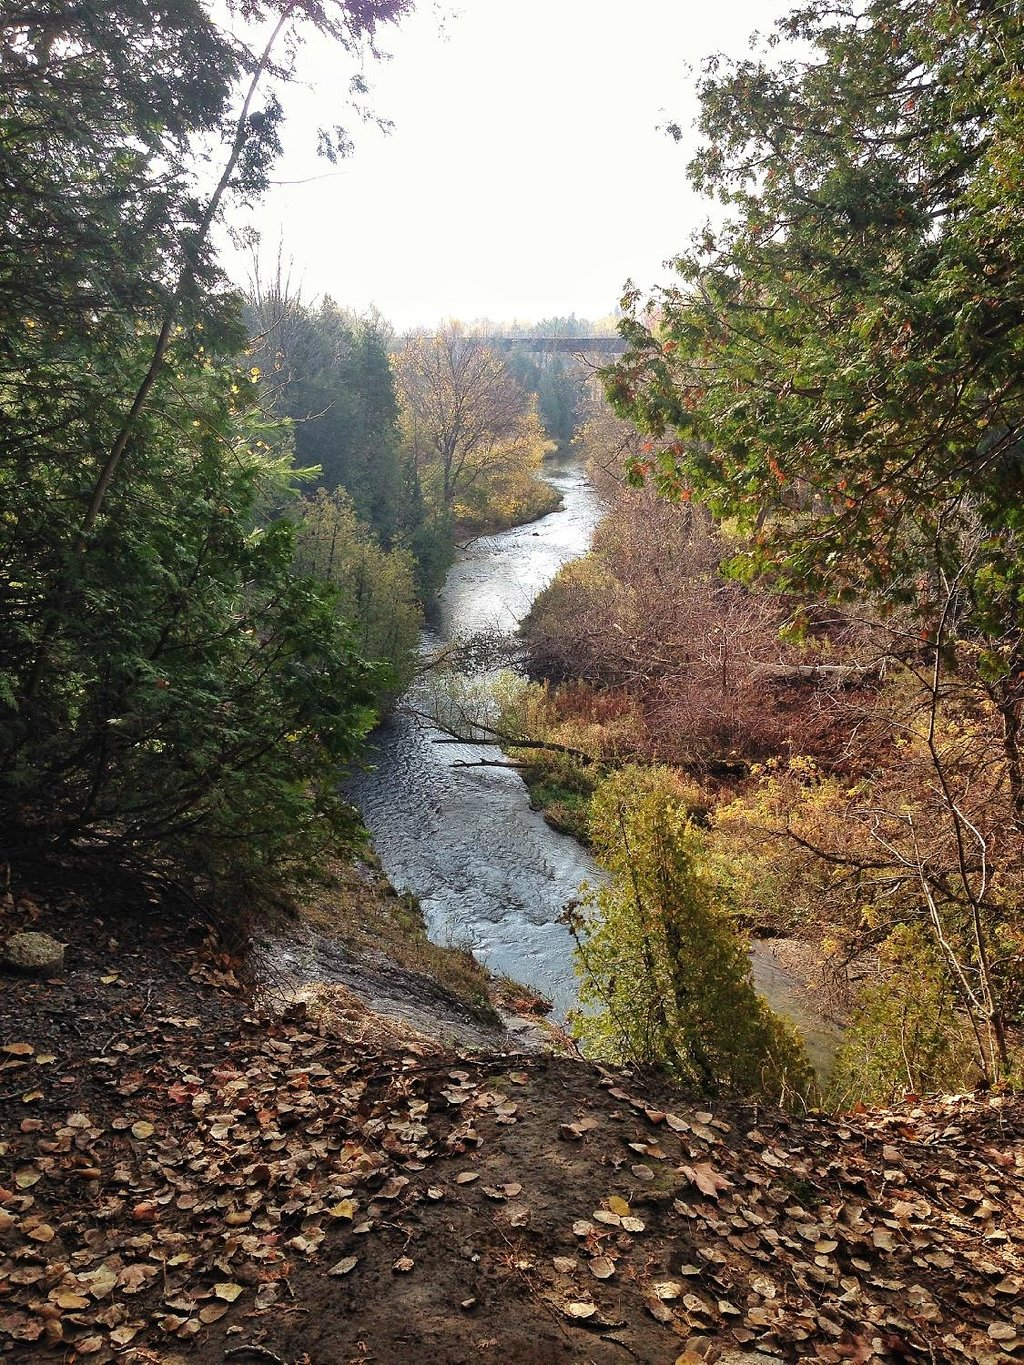 Things To Do in Greenwood Conservation Area, Restaurants in Greenwood Conservation Area